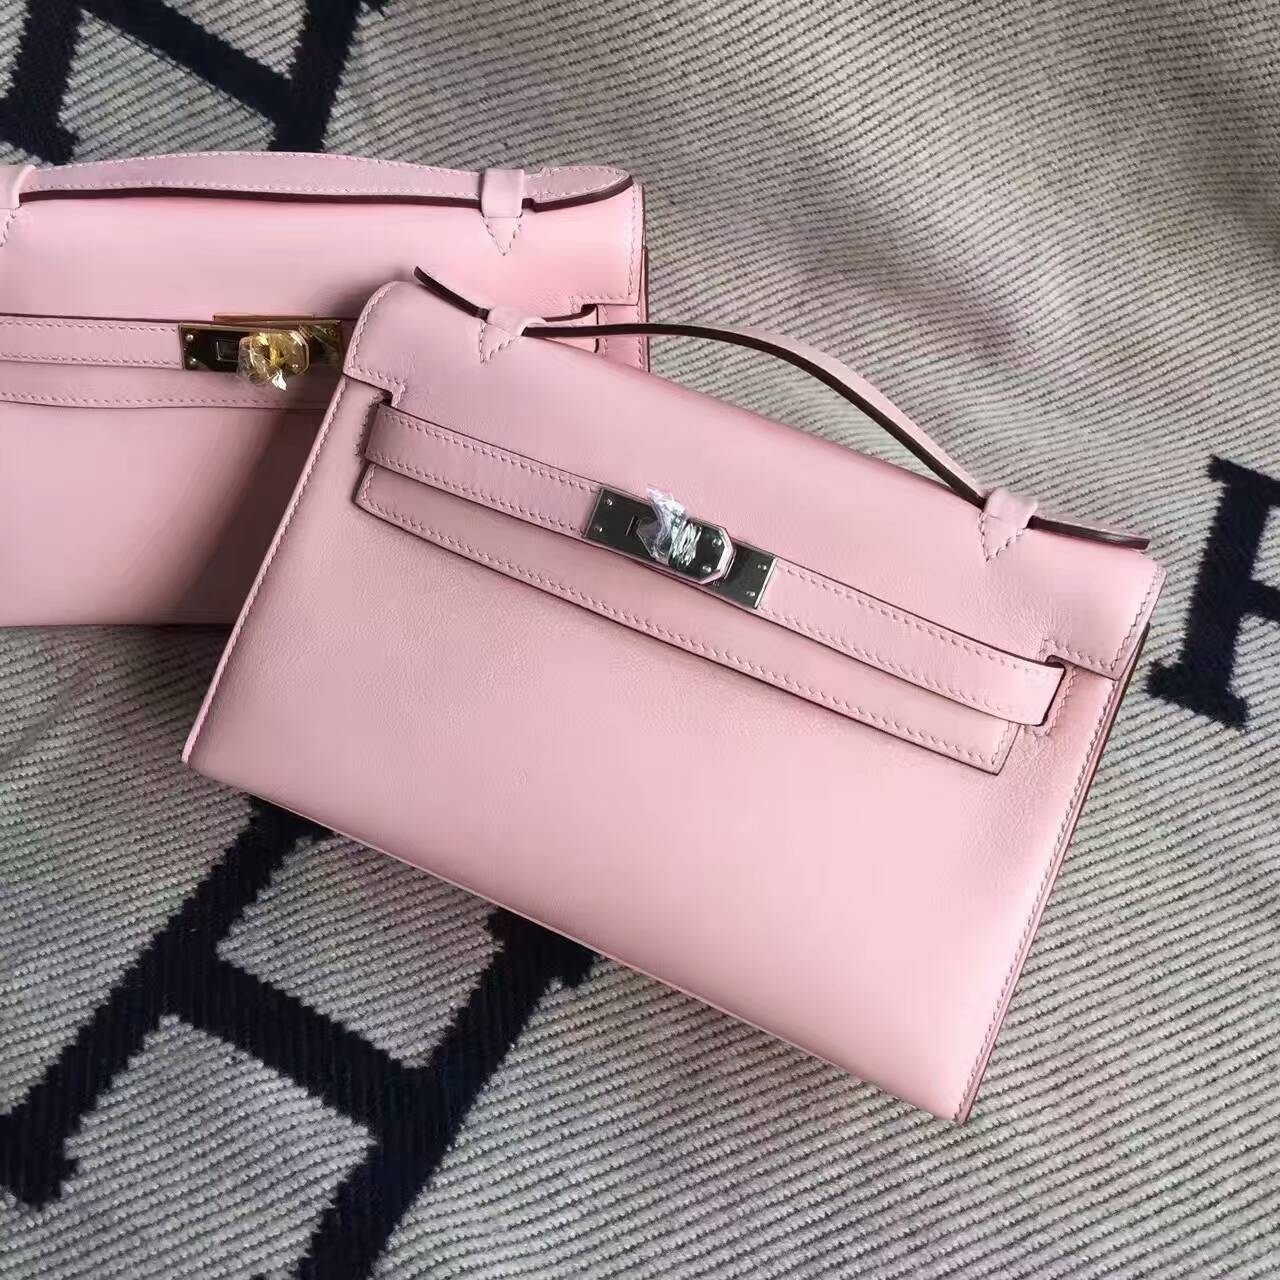 On Sale Hermes Swift Calfskin Leather Minikelly Clutch Bag in 3Q Rose Sakura